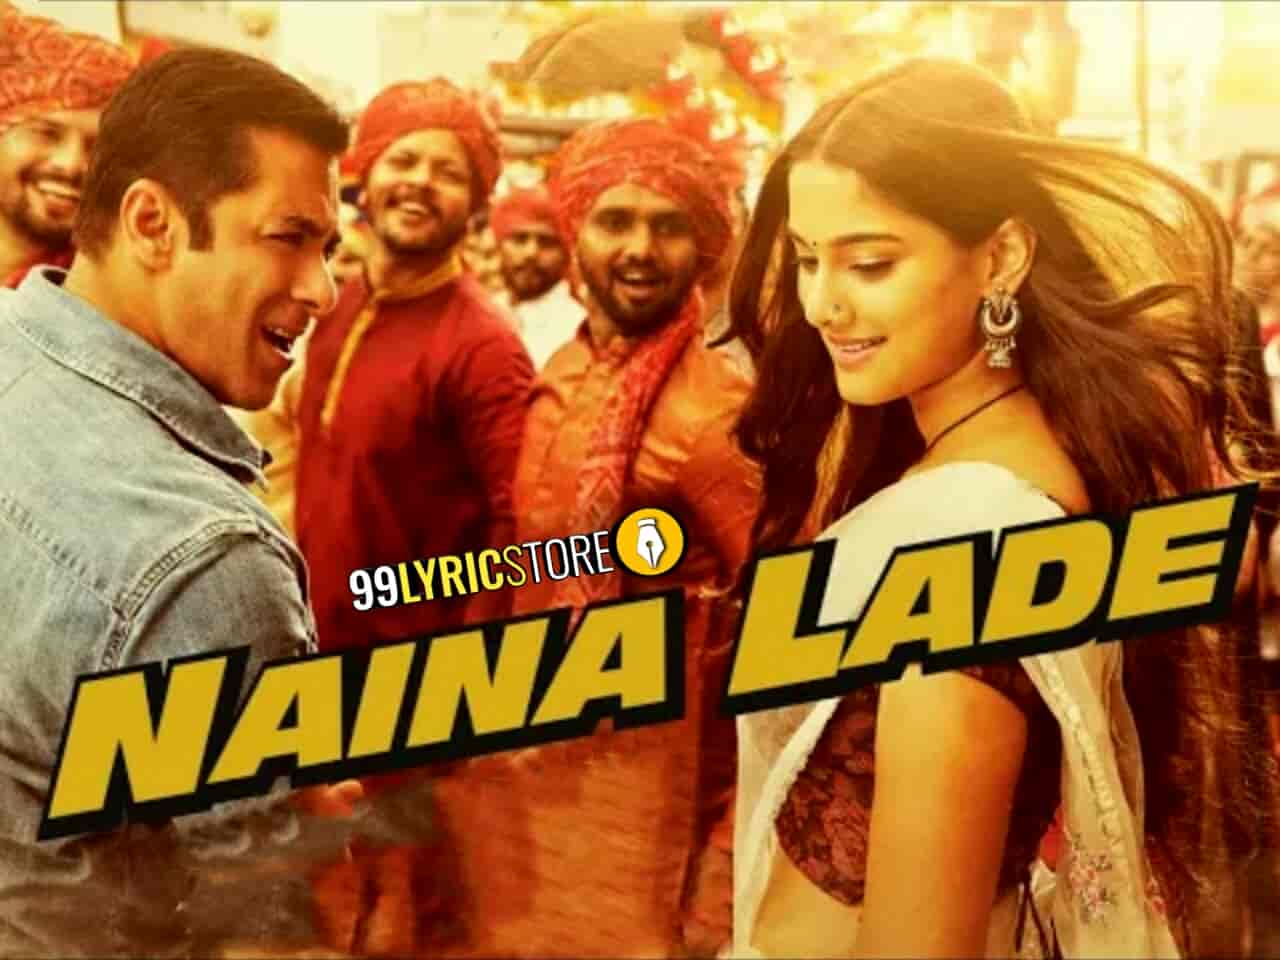 Naina Lade Dabangg 3 Song Images